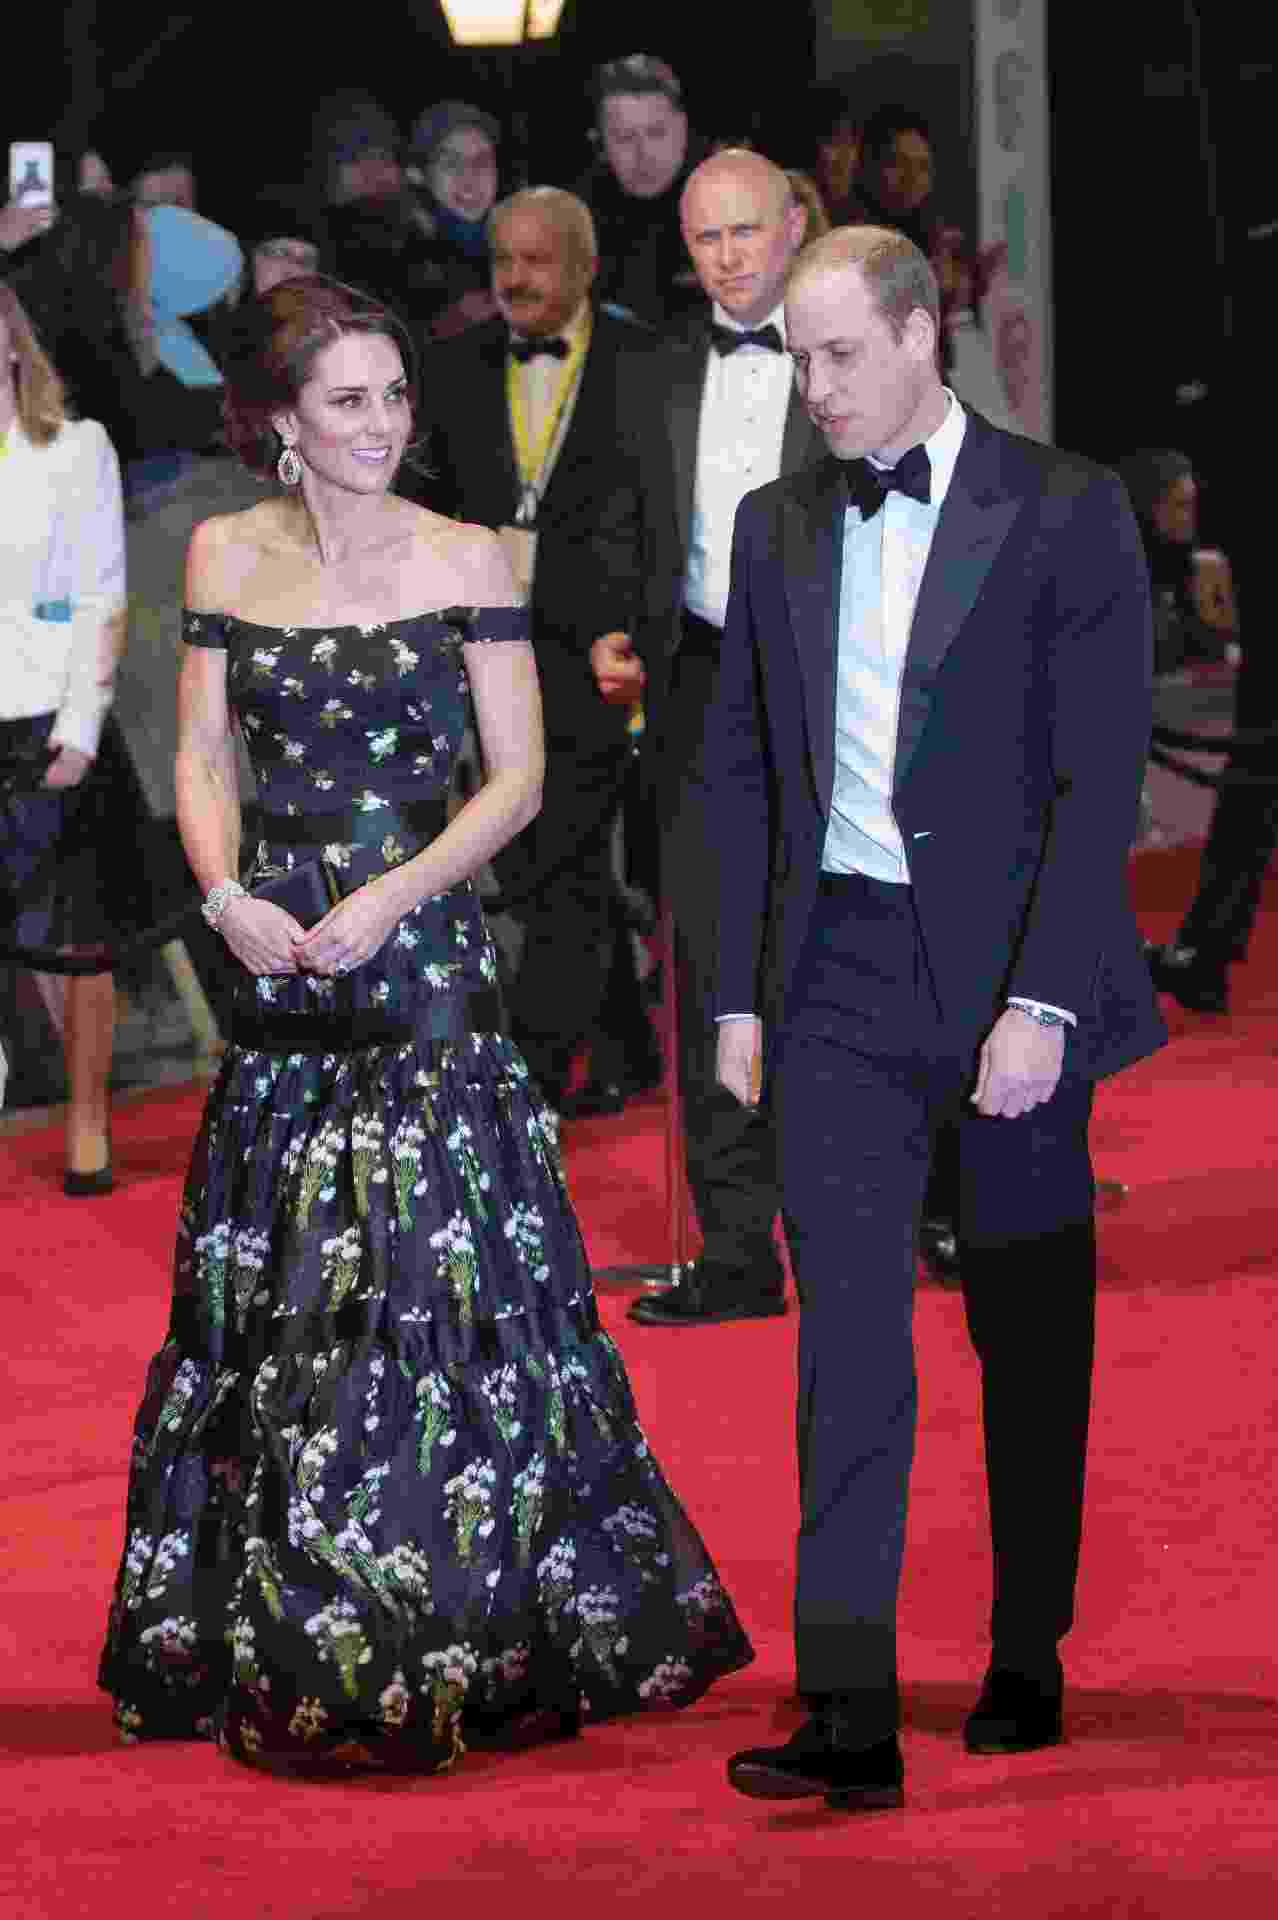 Kate Middleton e príncipe William no Bafta - Getty Images